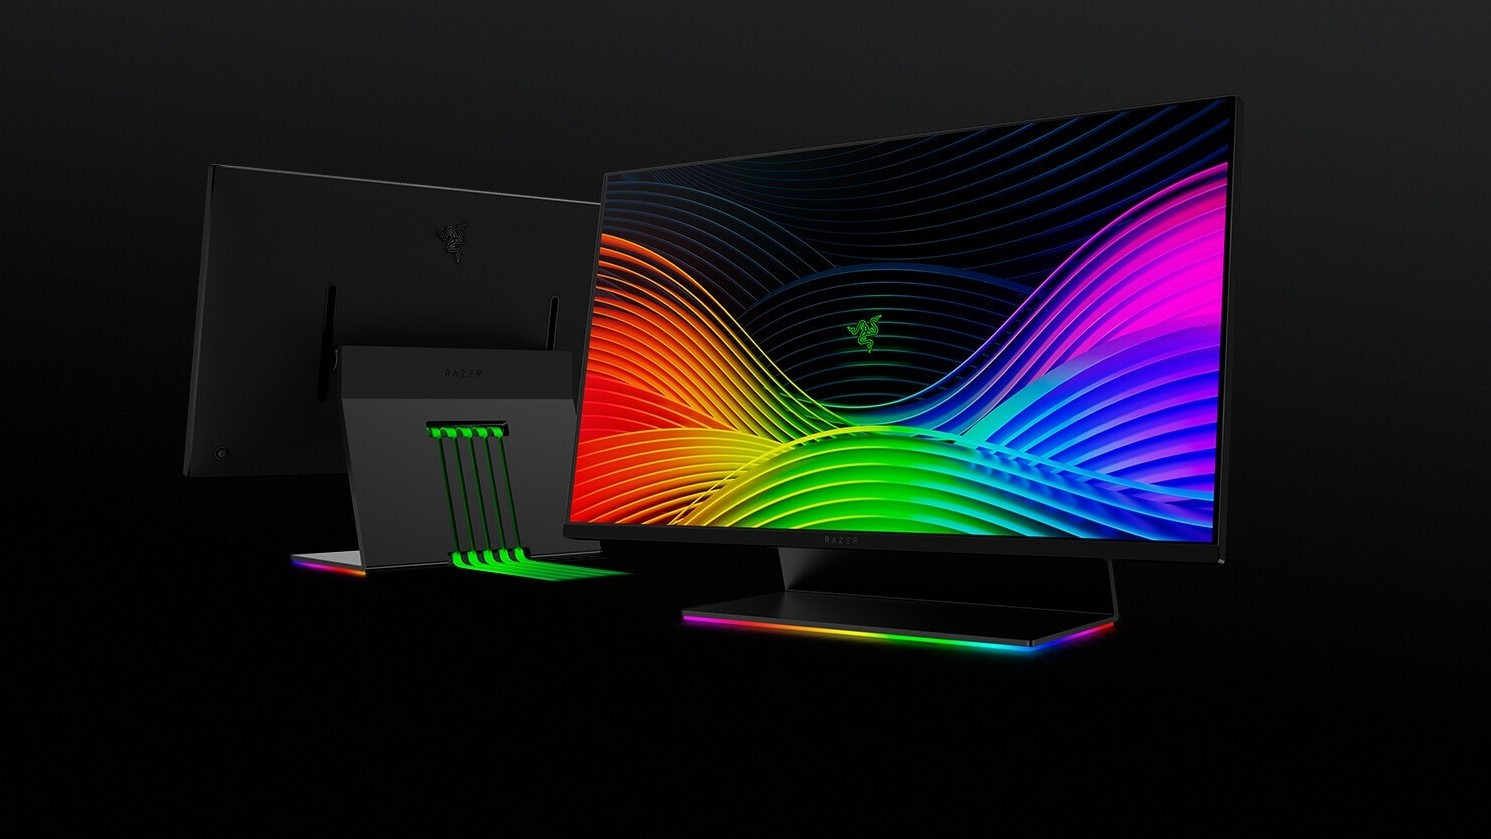 Razer introduces the 27-inch Raptor, its first gaming monitor